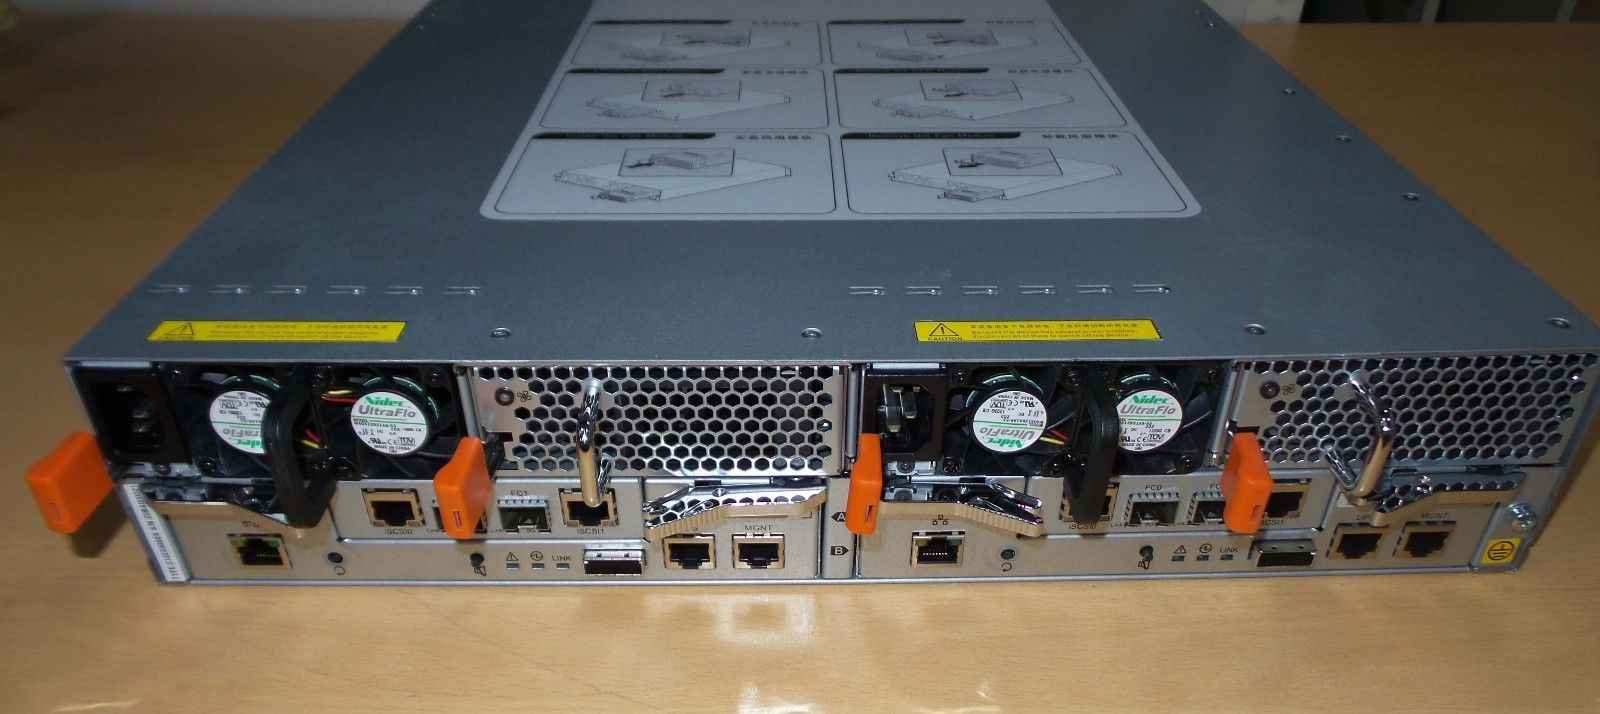 Huawei Storage Symantec Oceanspace S2600 12x 2TB 0231G520 + software + license_6